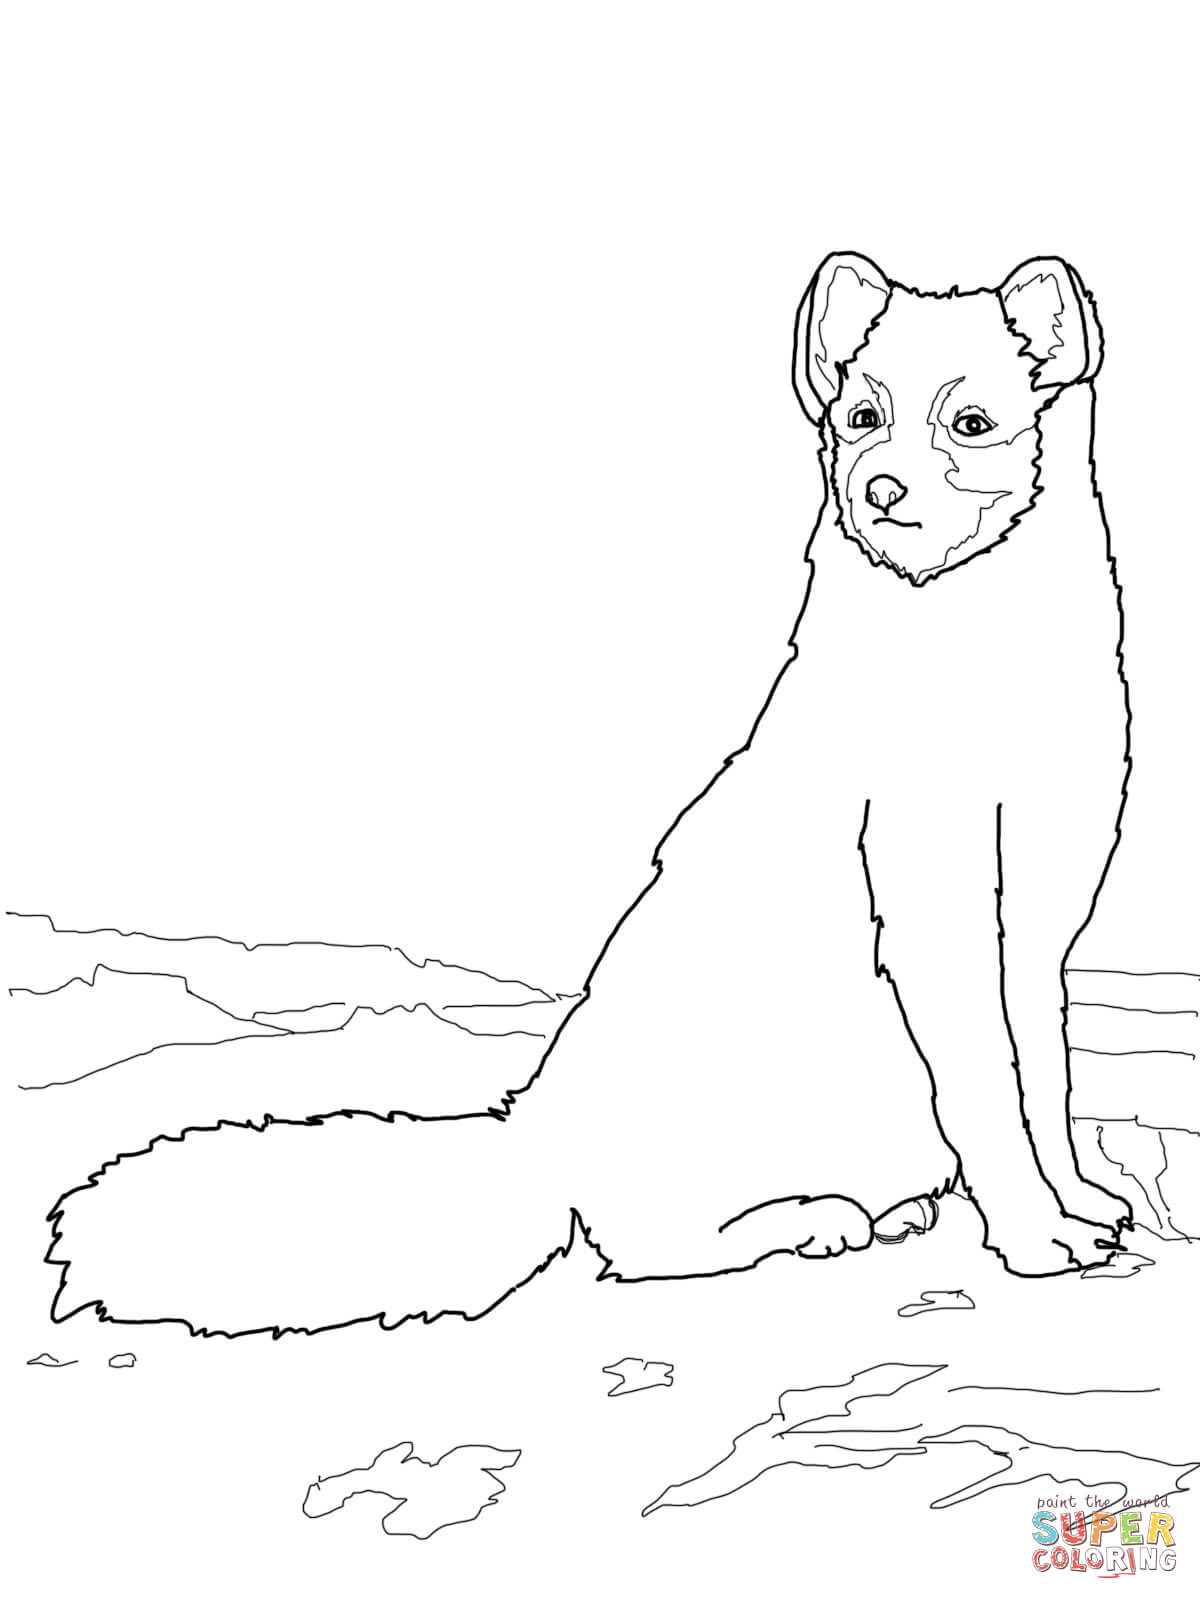 Sitting Arctic Fox Coloring Page Free Printable Coloring Pages Coloring Home